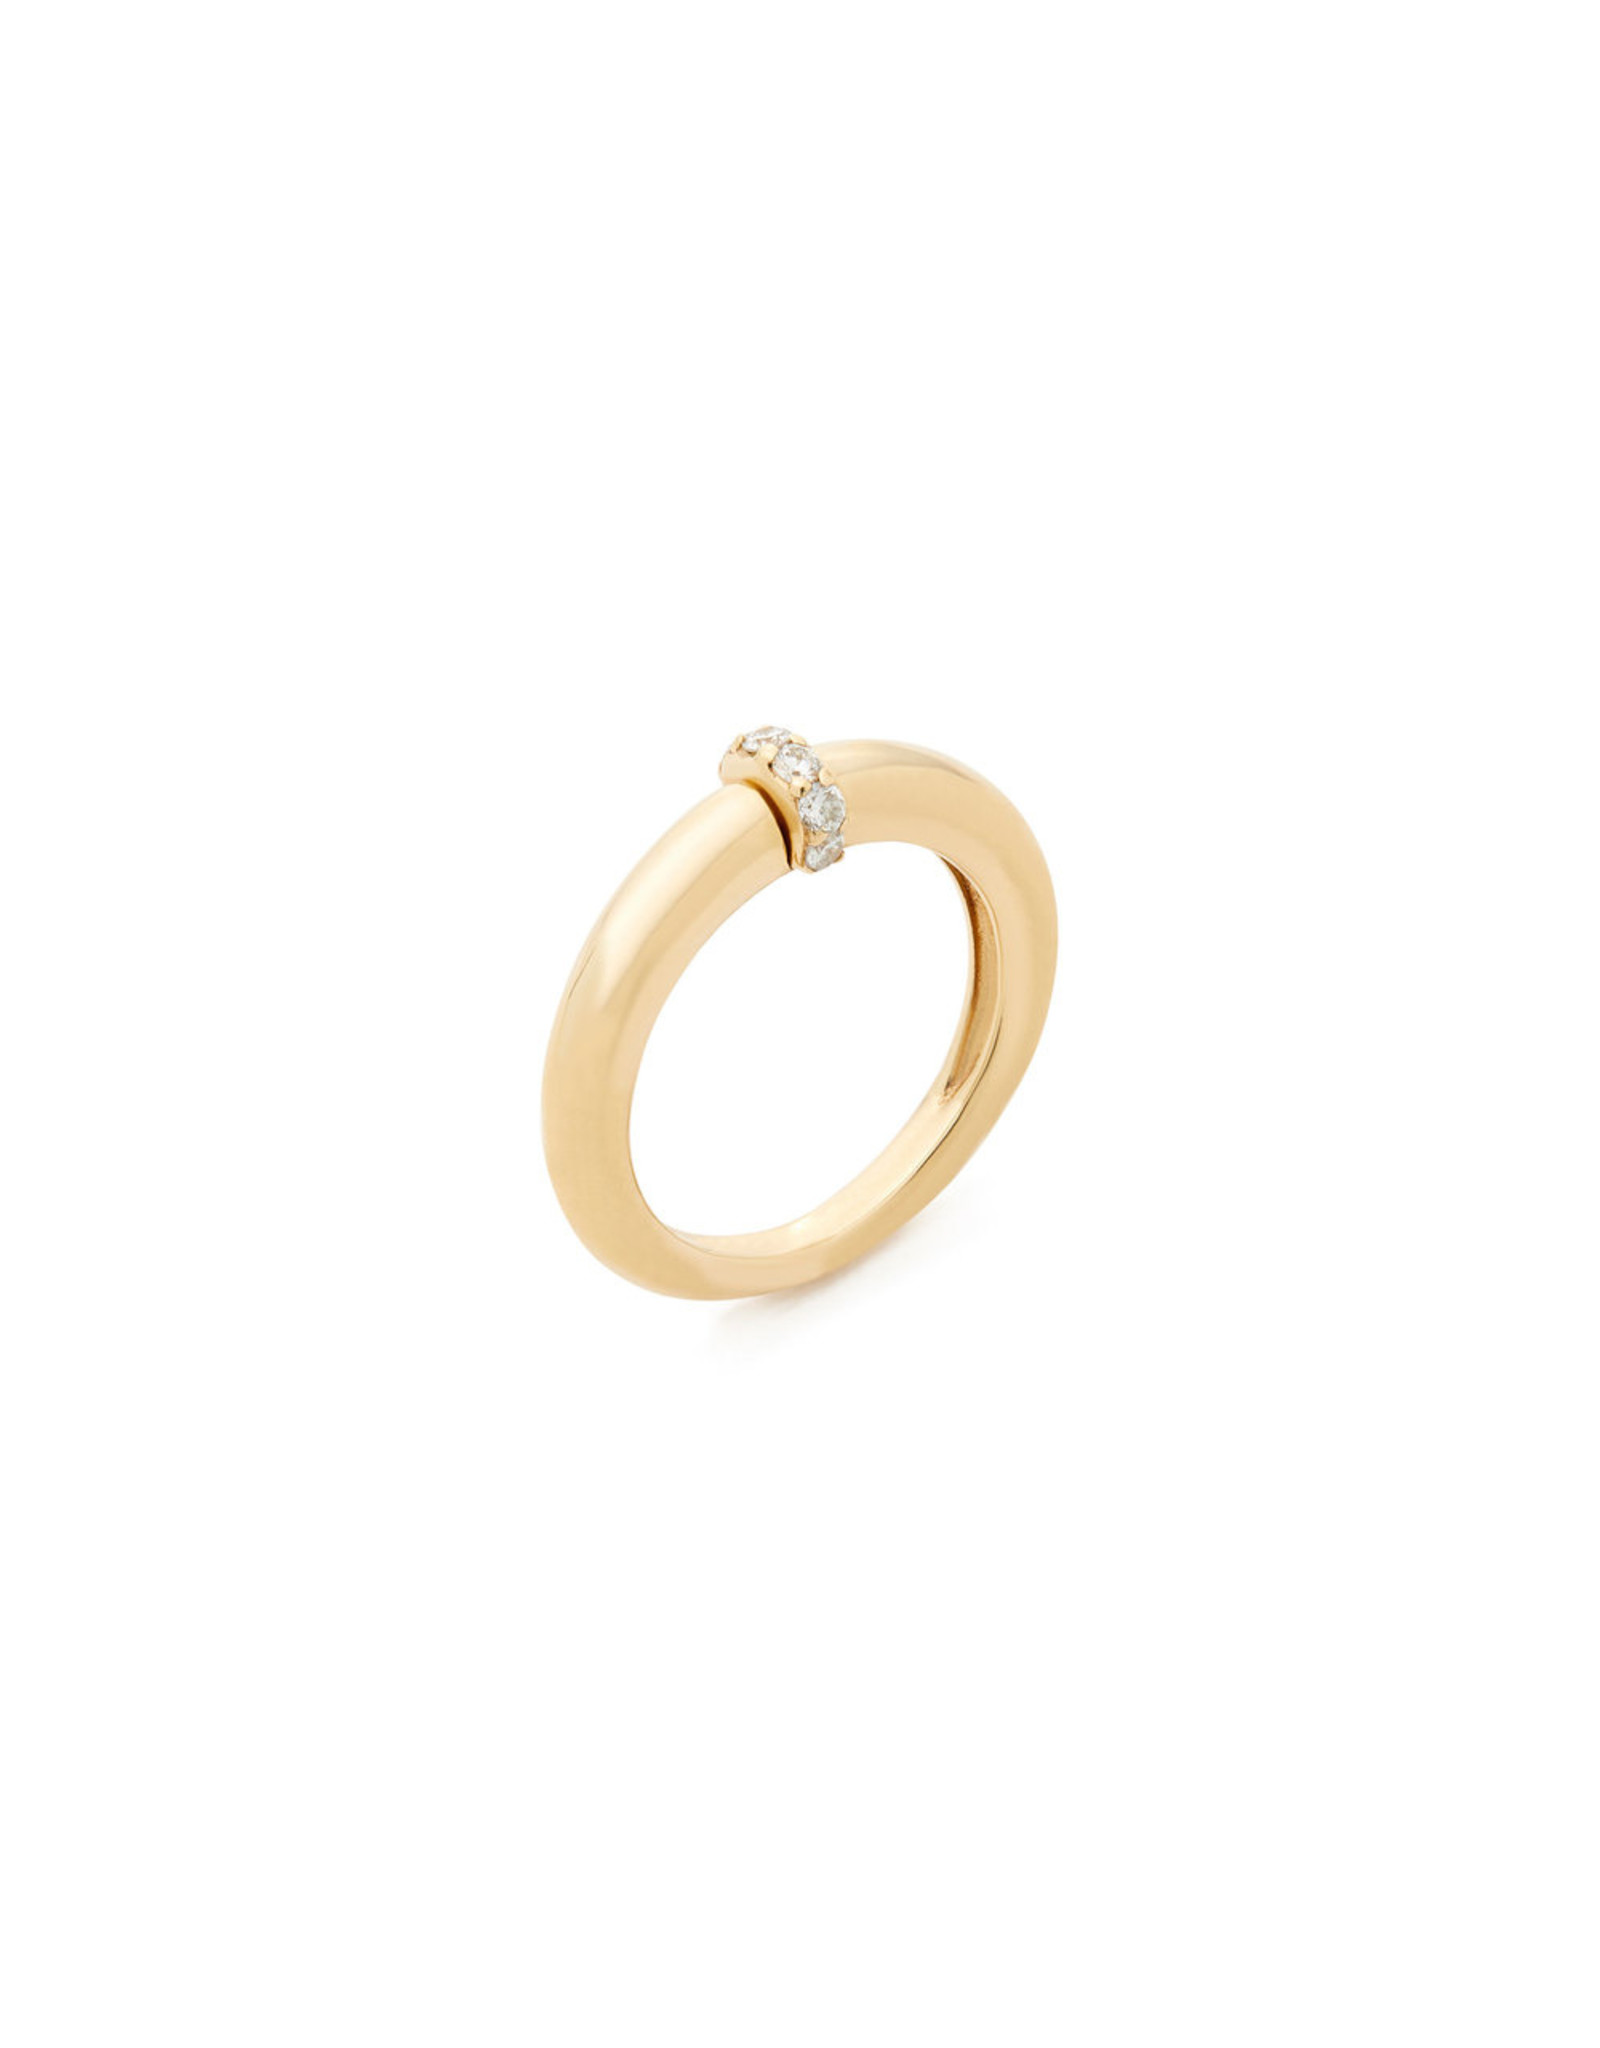 Sophie Ratner Sophie Ratner Single Diamond Domed Ring (Color: Yellow Gold / Pave, Size: 5)